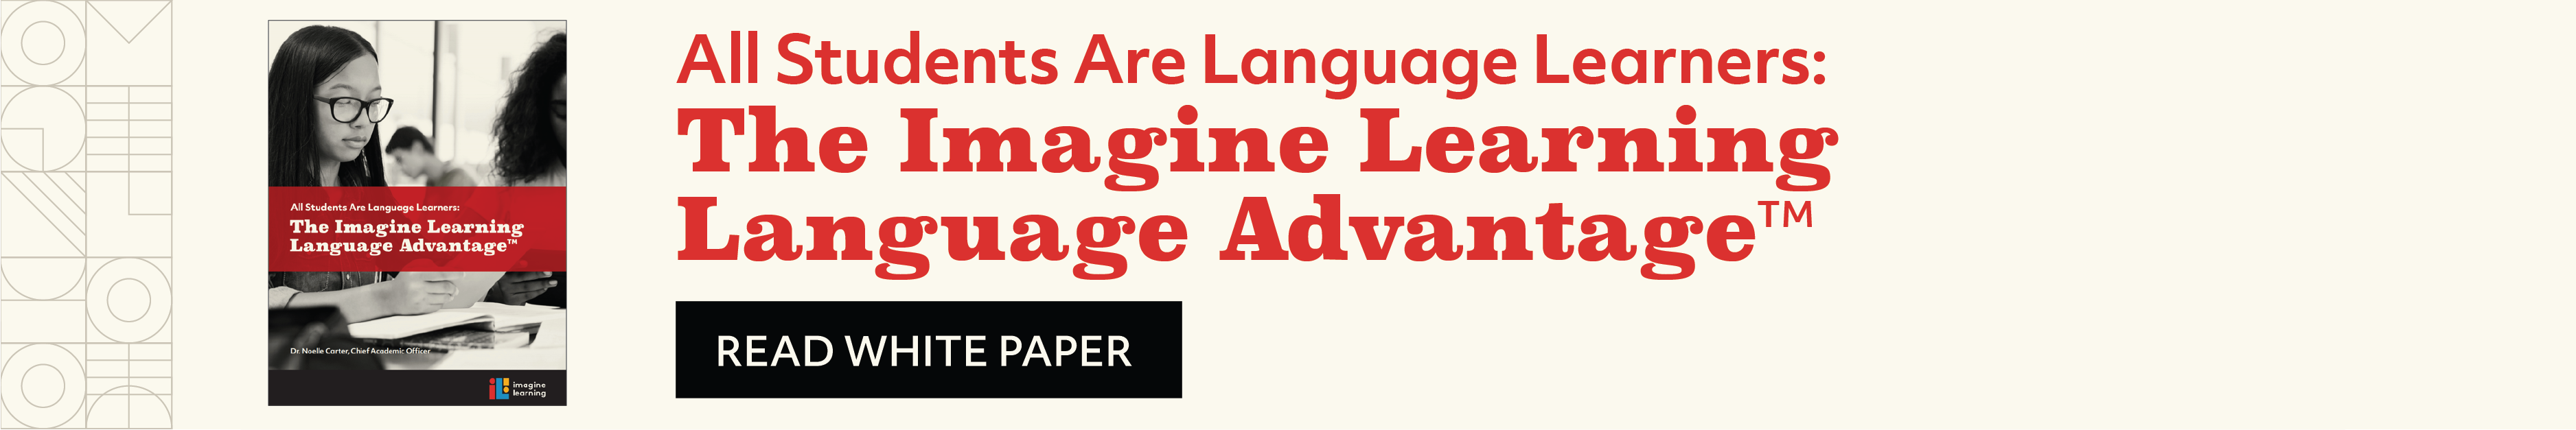 language advantage banner